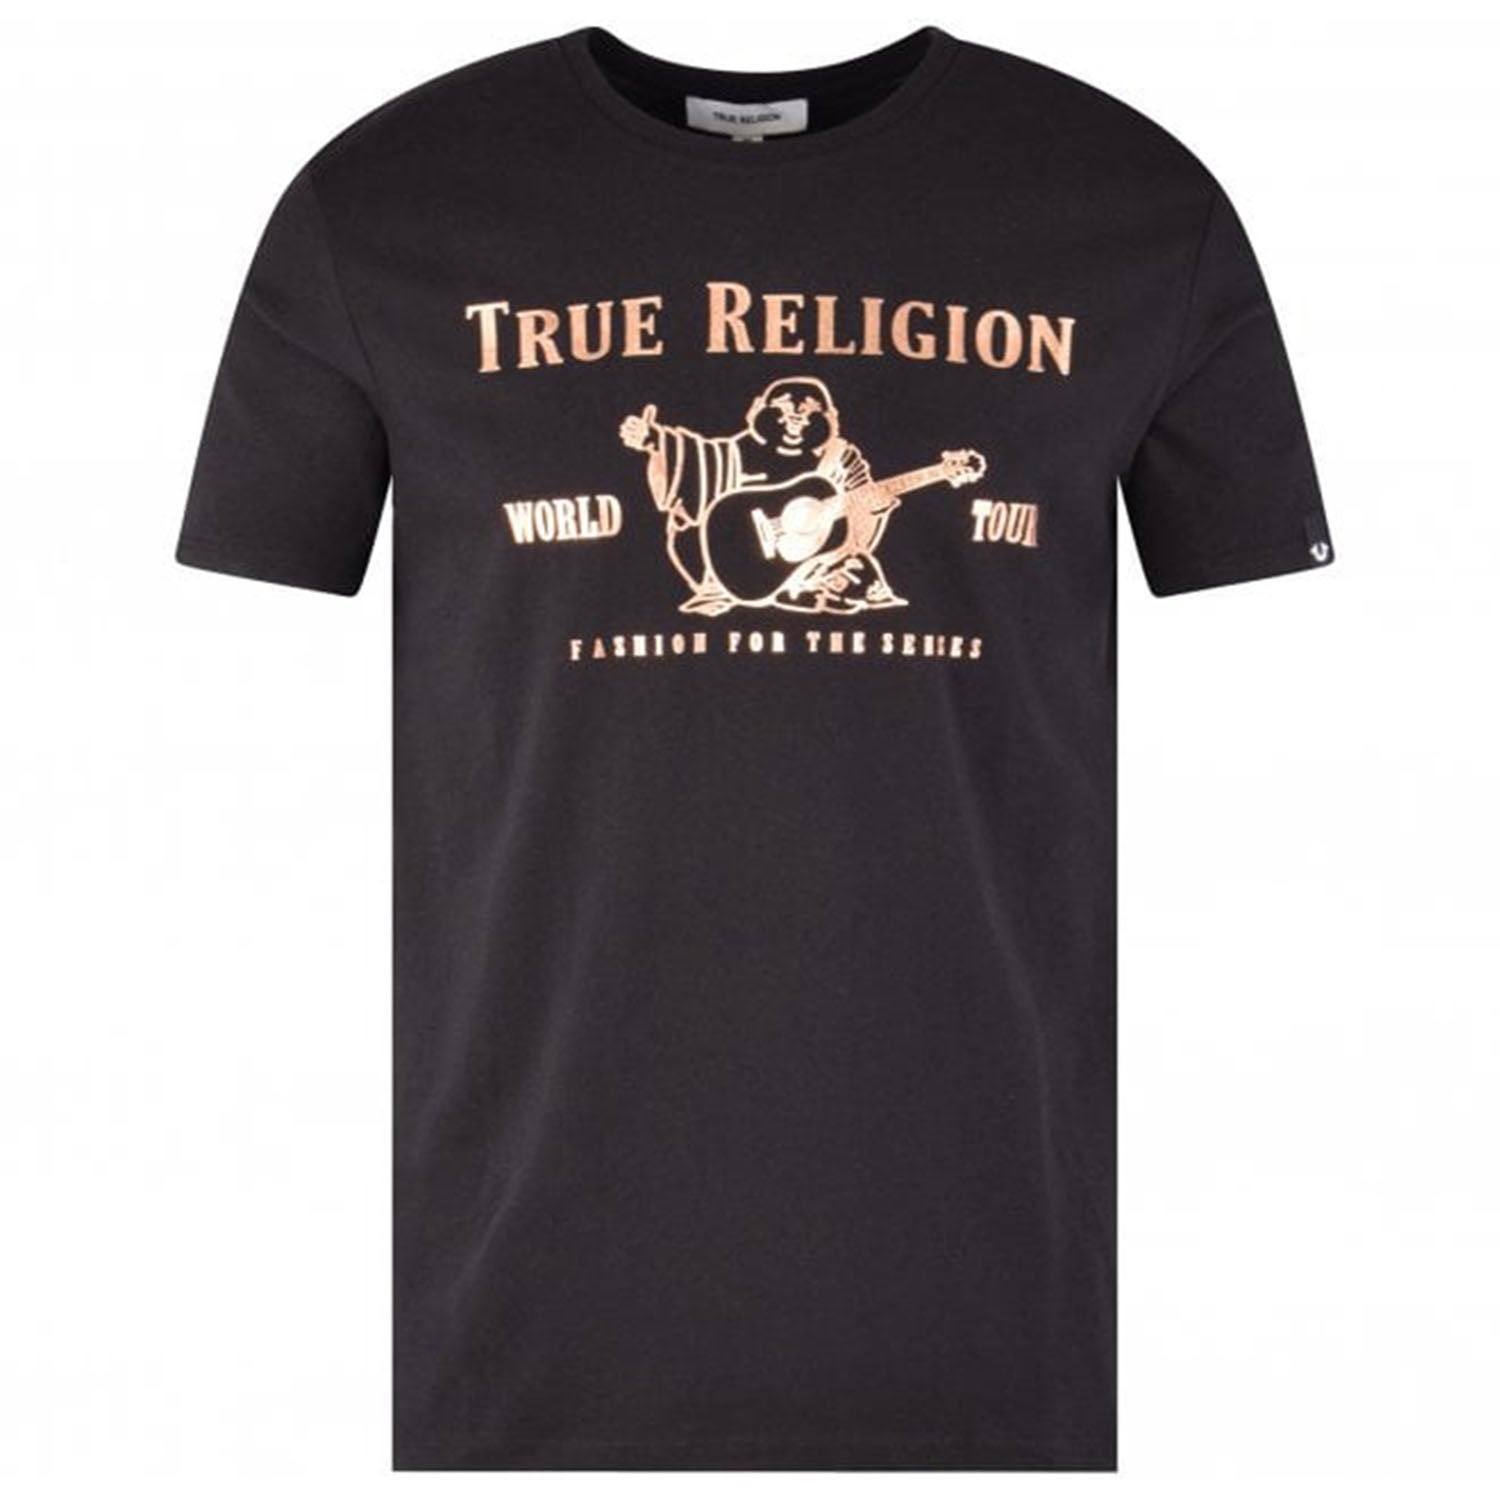 True Religion Buddha Branding Printed T-Shirt